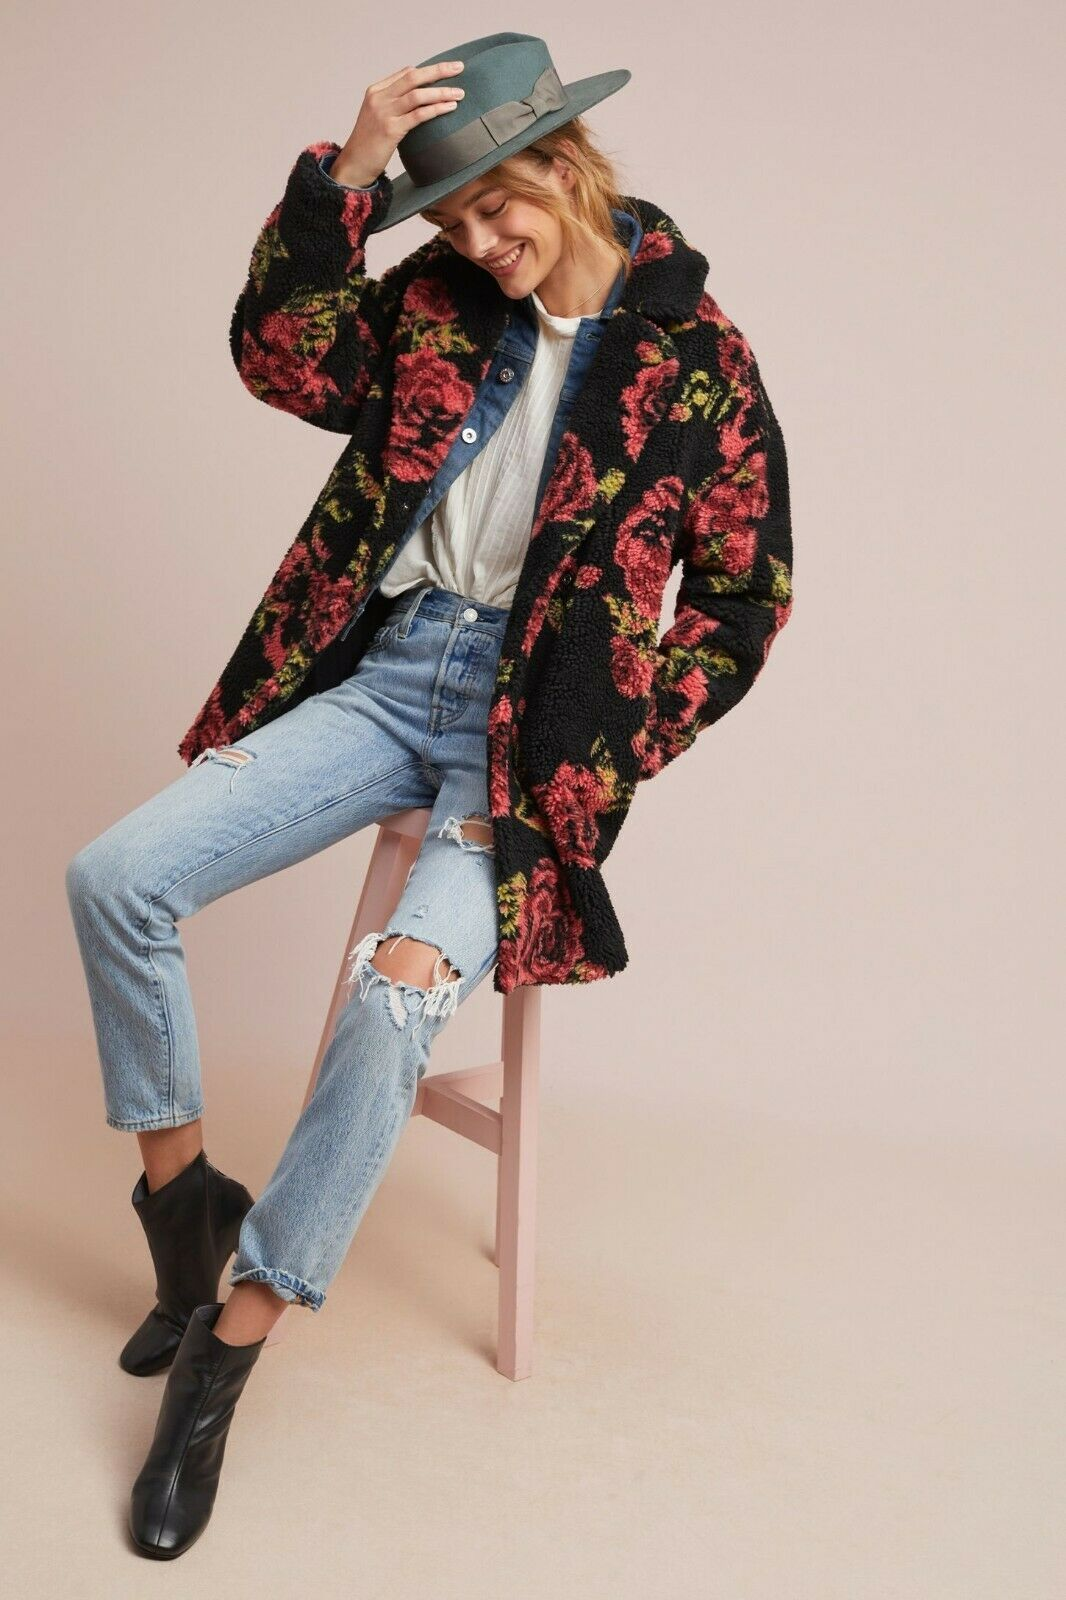 Anthropologie Winter Roses Coat by If By Sea Sz XL - NWT image 2